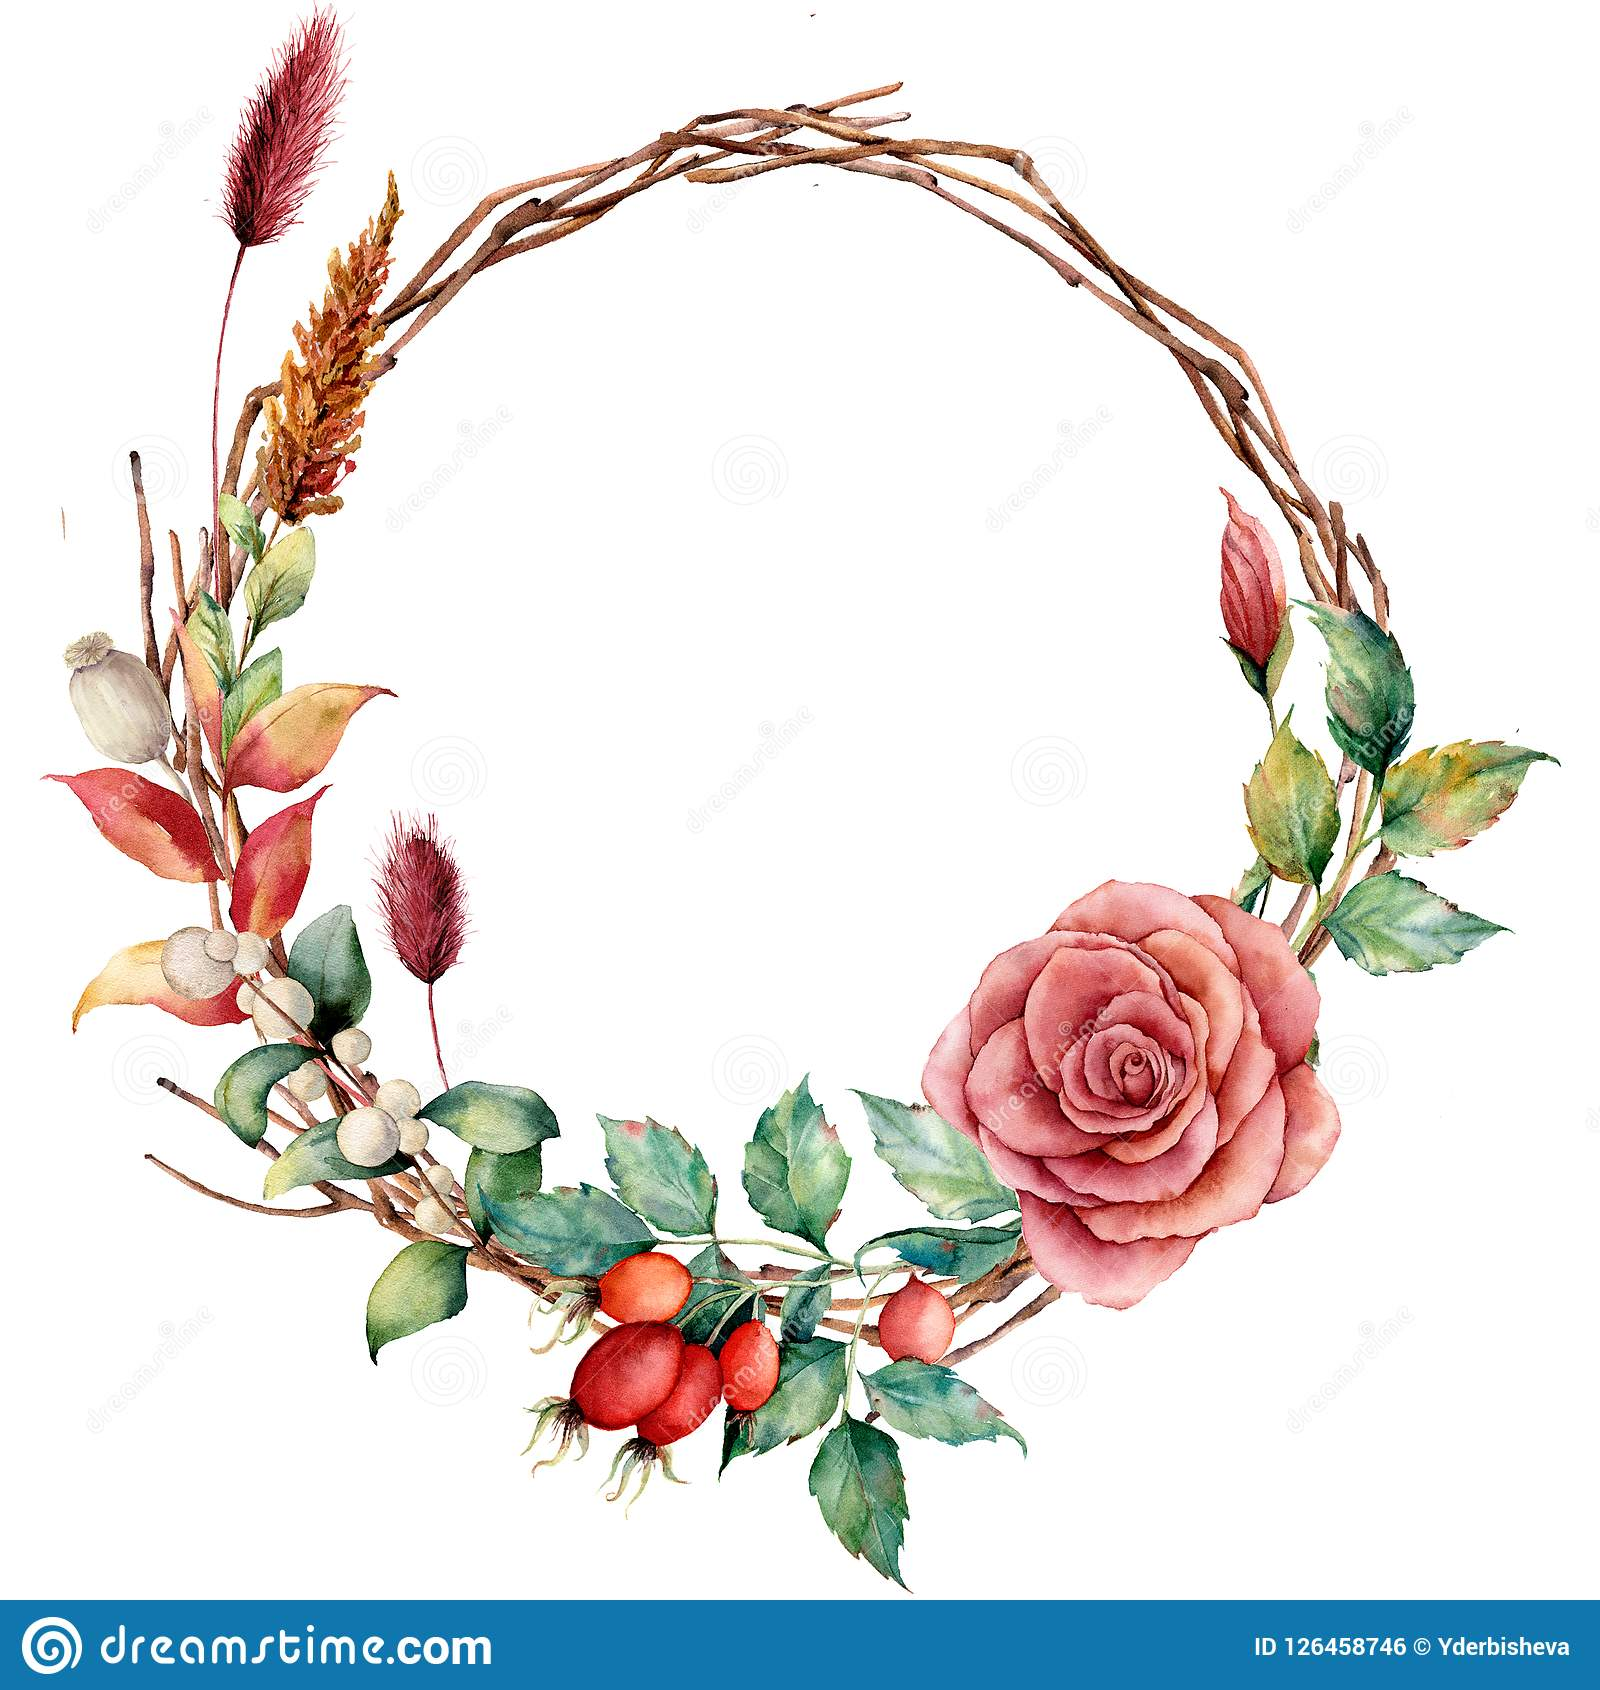 Watercolor wreath with dogrose and flower. Hand painted tree border with dahlia, tree branch and leaves, lagurus